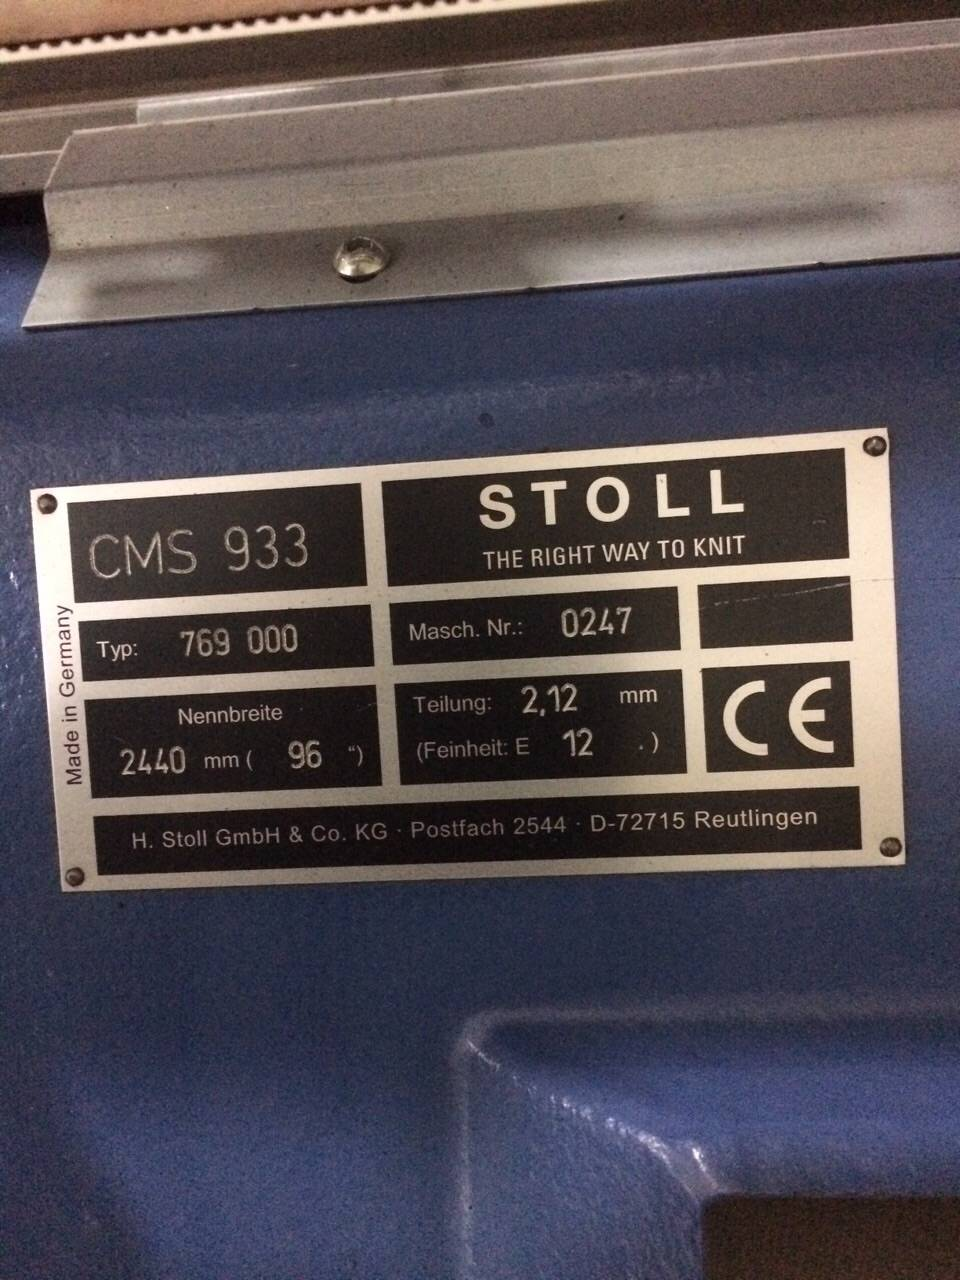 STOLL 933 OKC FLAT KNITTING MACHINES (5 GG,10 GG,7 GG,12 GG) VERY ATTRACTIVE PRICE